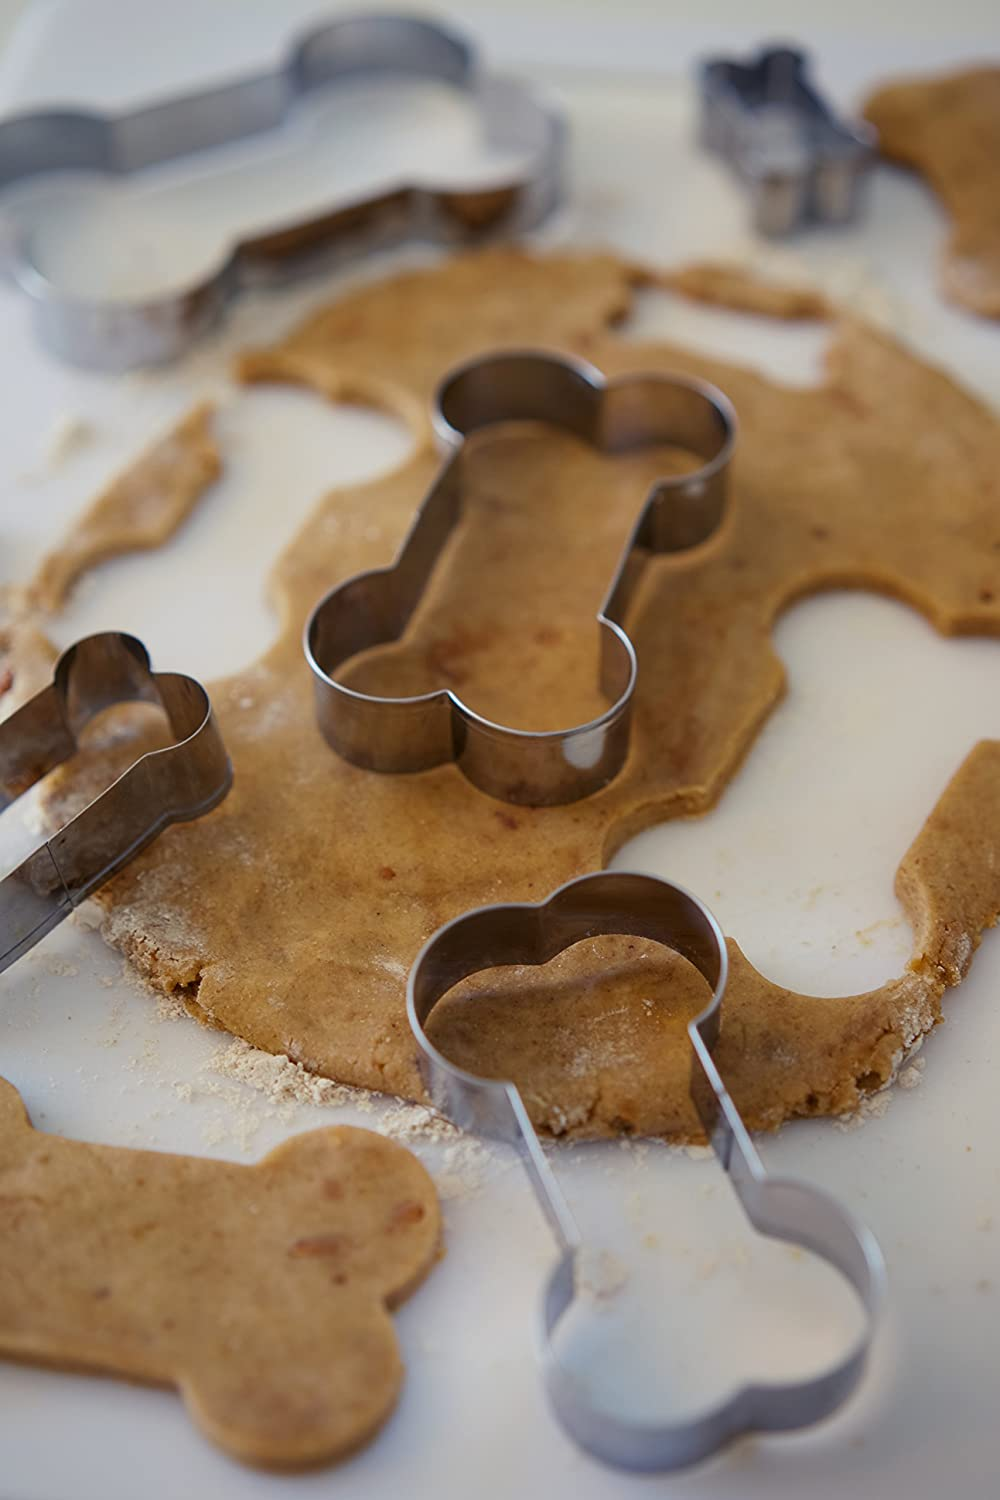 Perfect For Making Homemade Puppy Biscuits Stainless Steel Shapes 2 3 3.5 4 Le Dogue 3.5 Stainless Steel Shapes 2 5 Bone Shaped set of 5 4 Dog Cookie Cutters For Baking Treats and Cookies 3